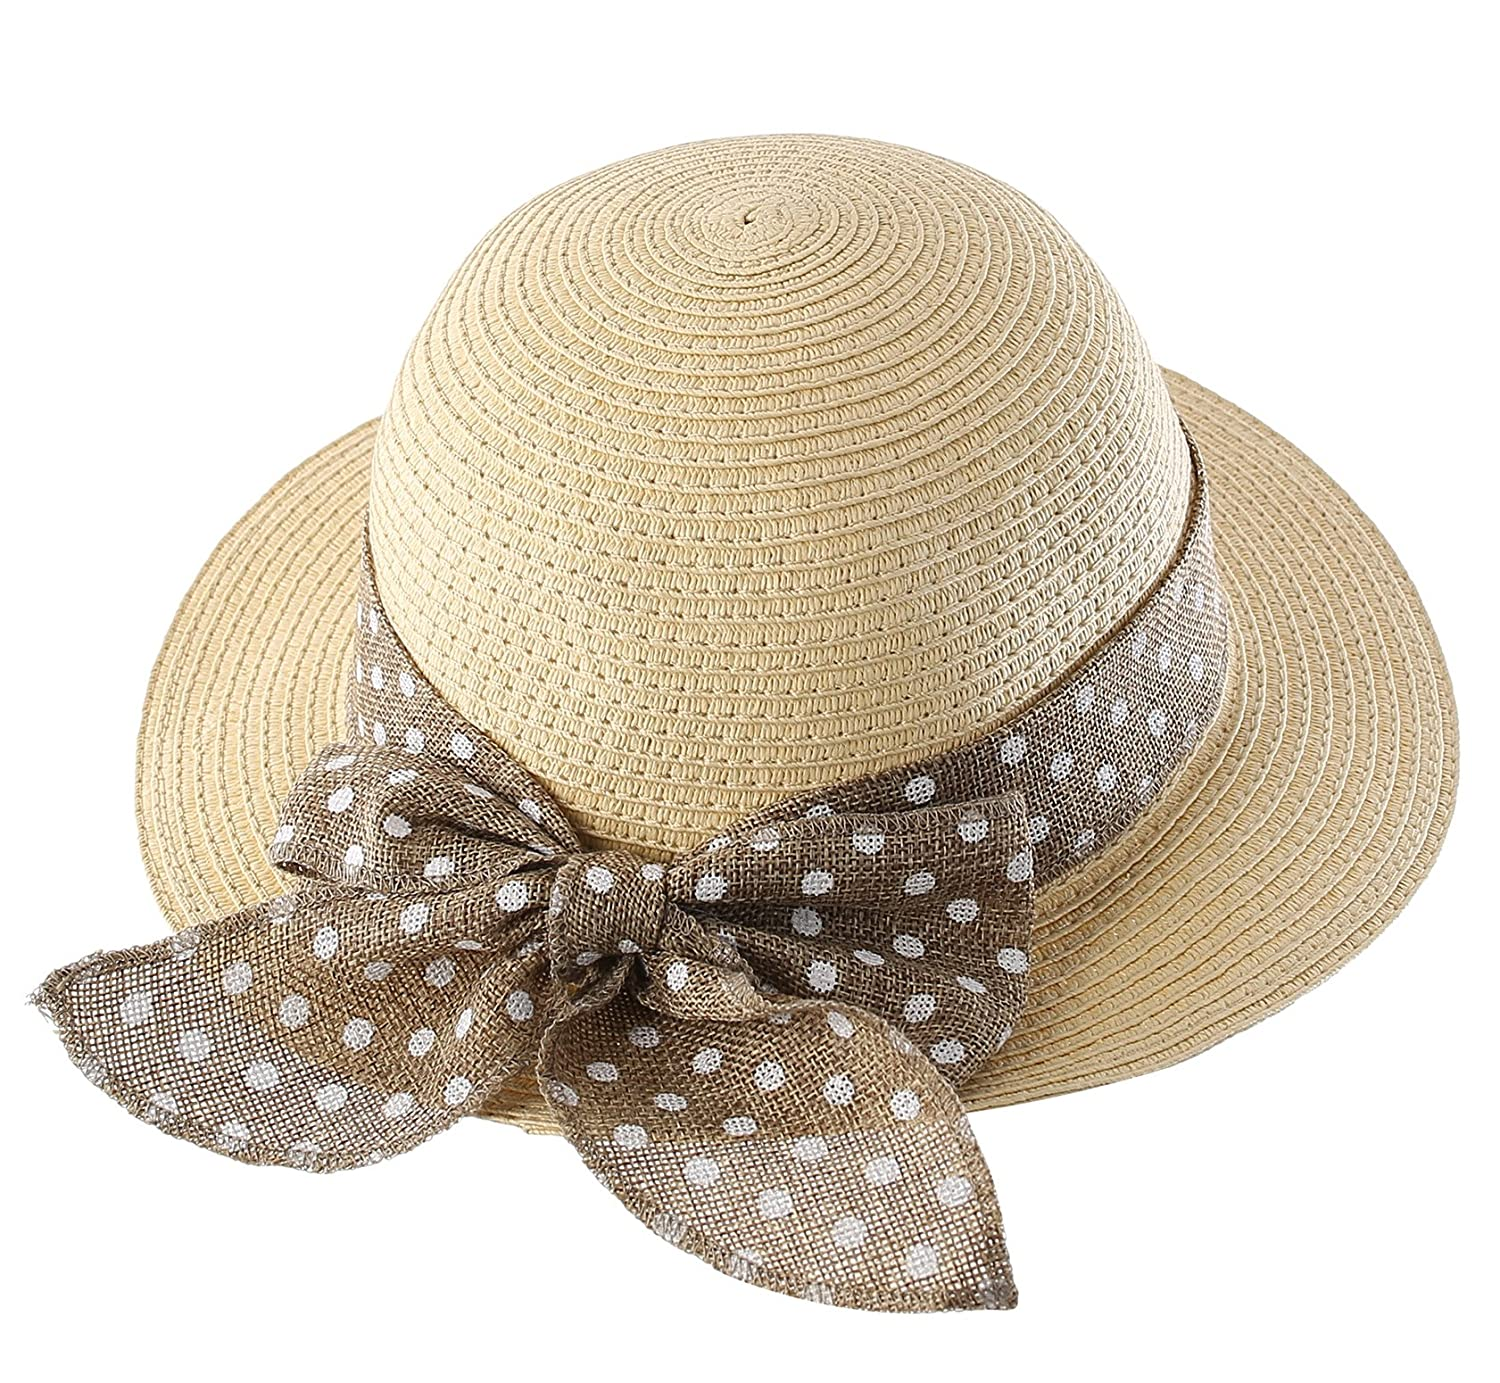 5b7235992359f Amazon.com  Connectyle Kids Summer Straw Hat Bowknot Beach Sun Protection  Hats for Girls  Clothing